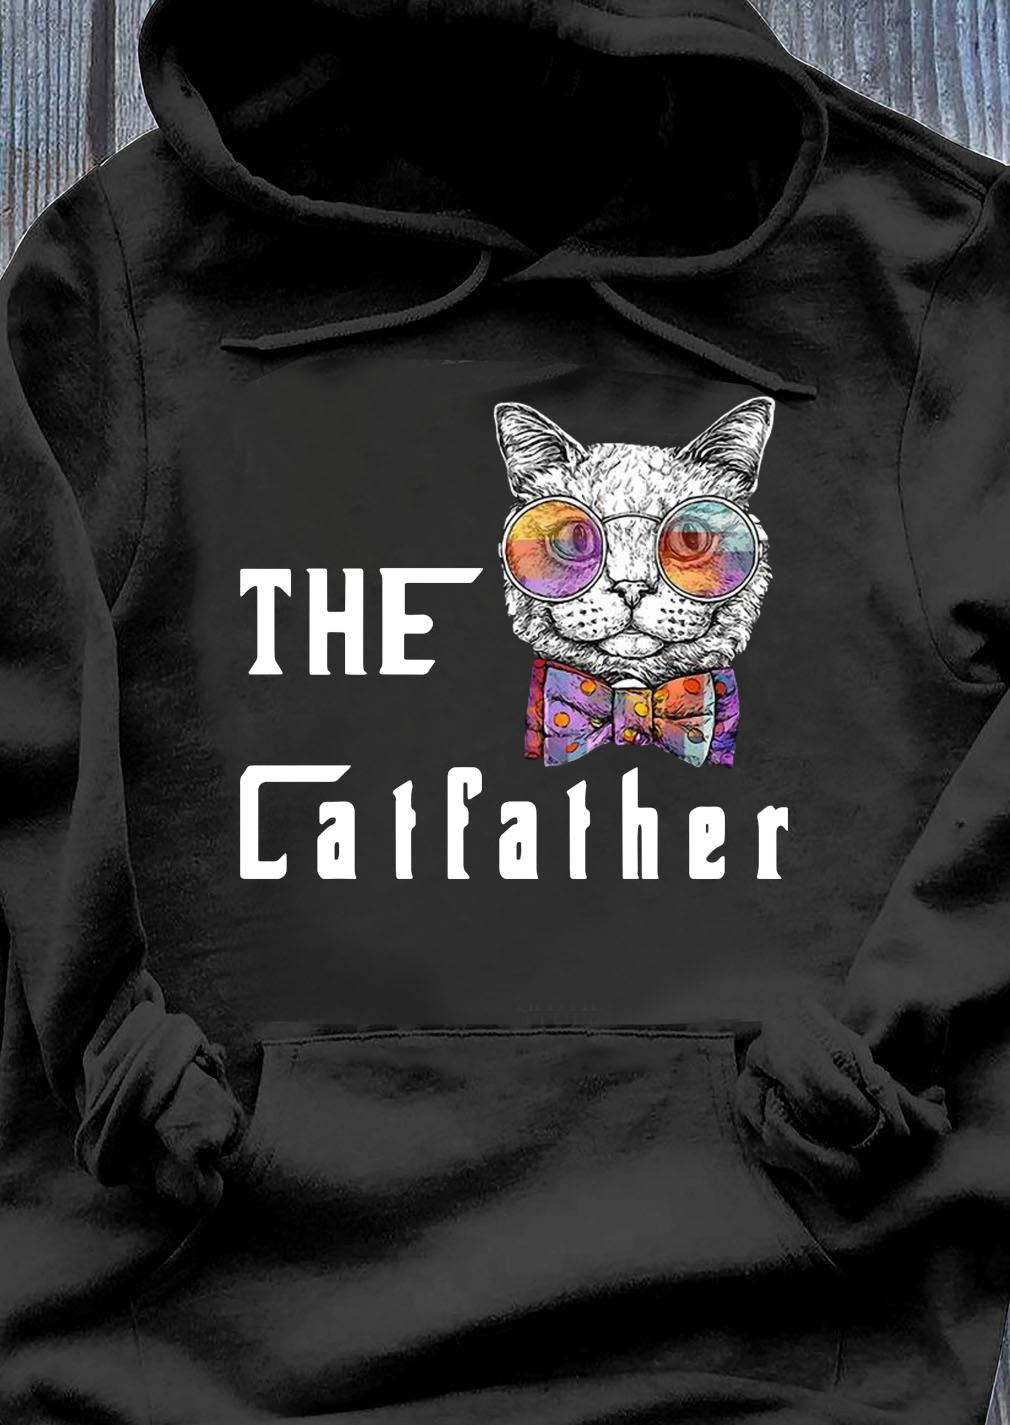 The Catfather Shirt Hoodie